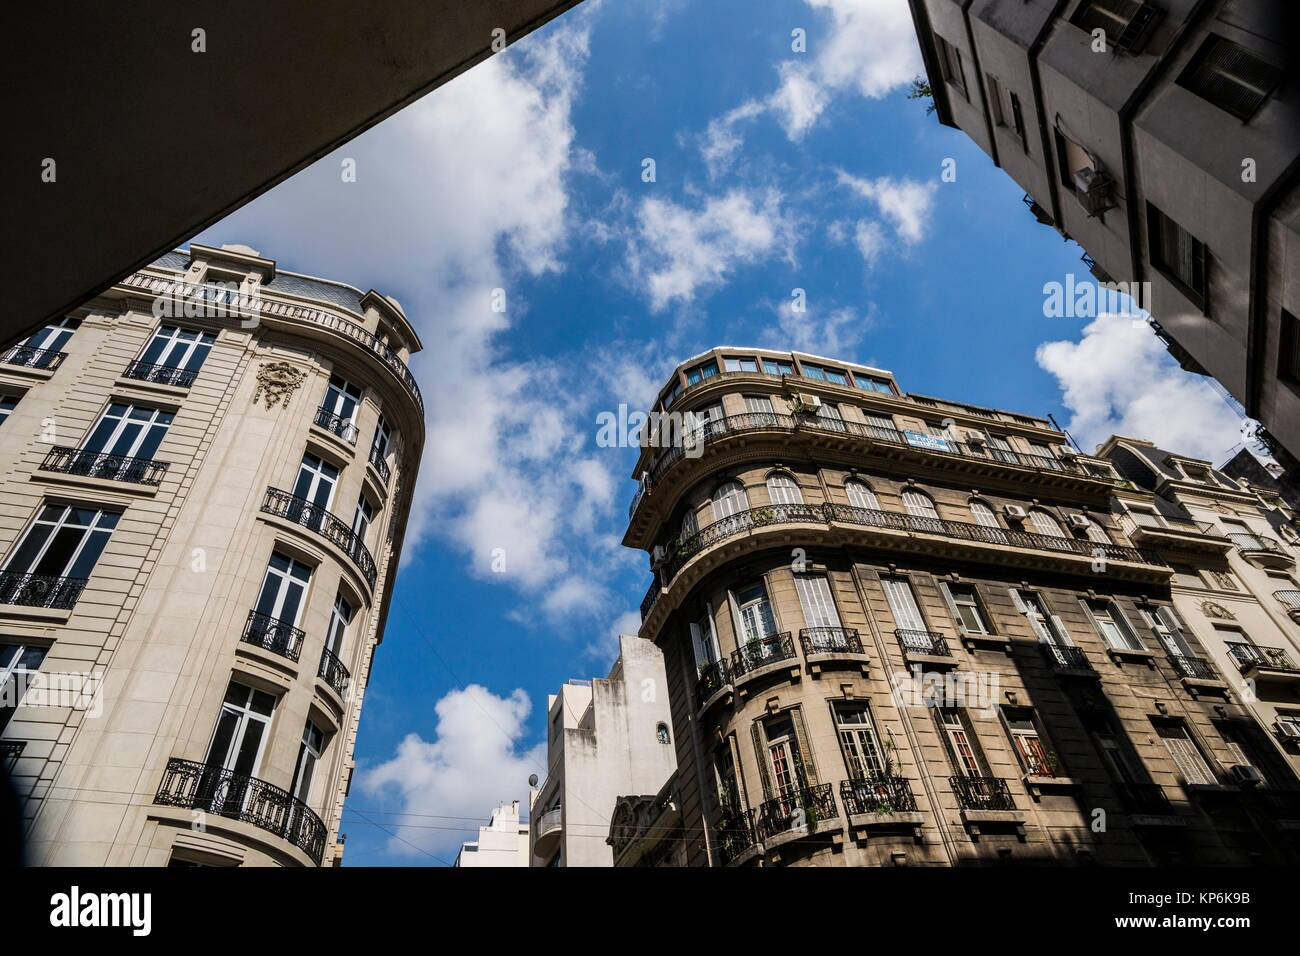 Downtown (El Centro), Buenos Aires, Argentina, South America. Stock Photo